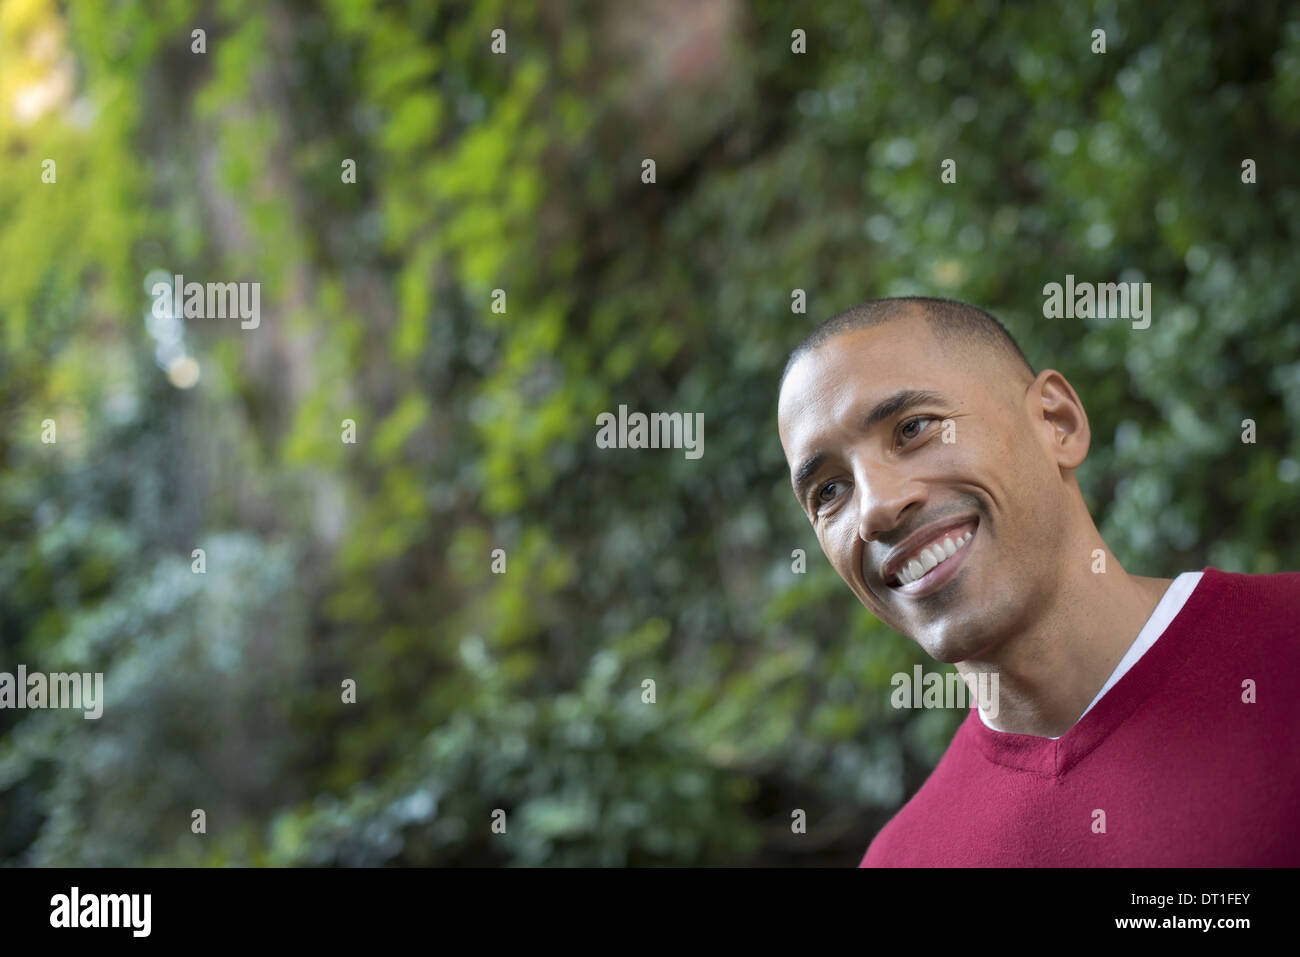 Scenes from urban life in New York City A man smiling in a relaxed mood in a leafy space - Stock Image